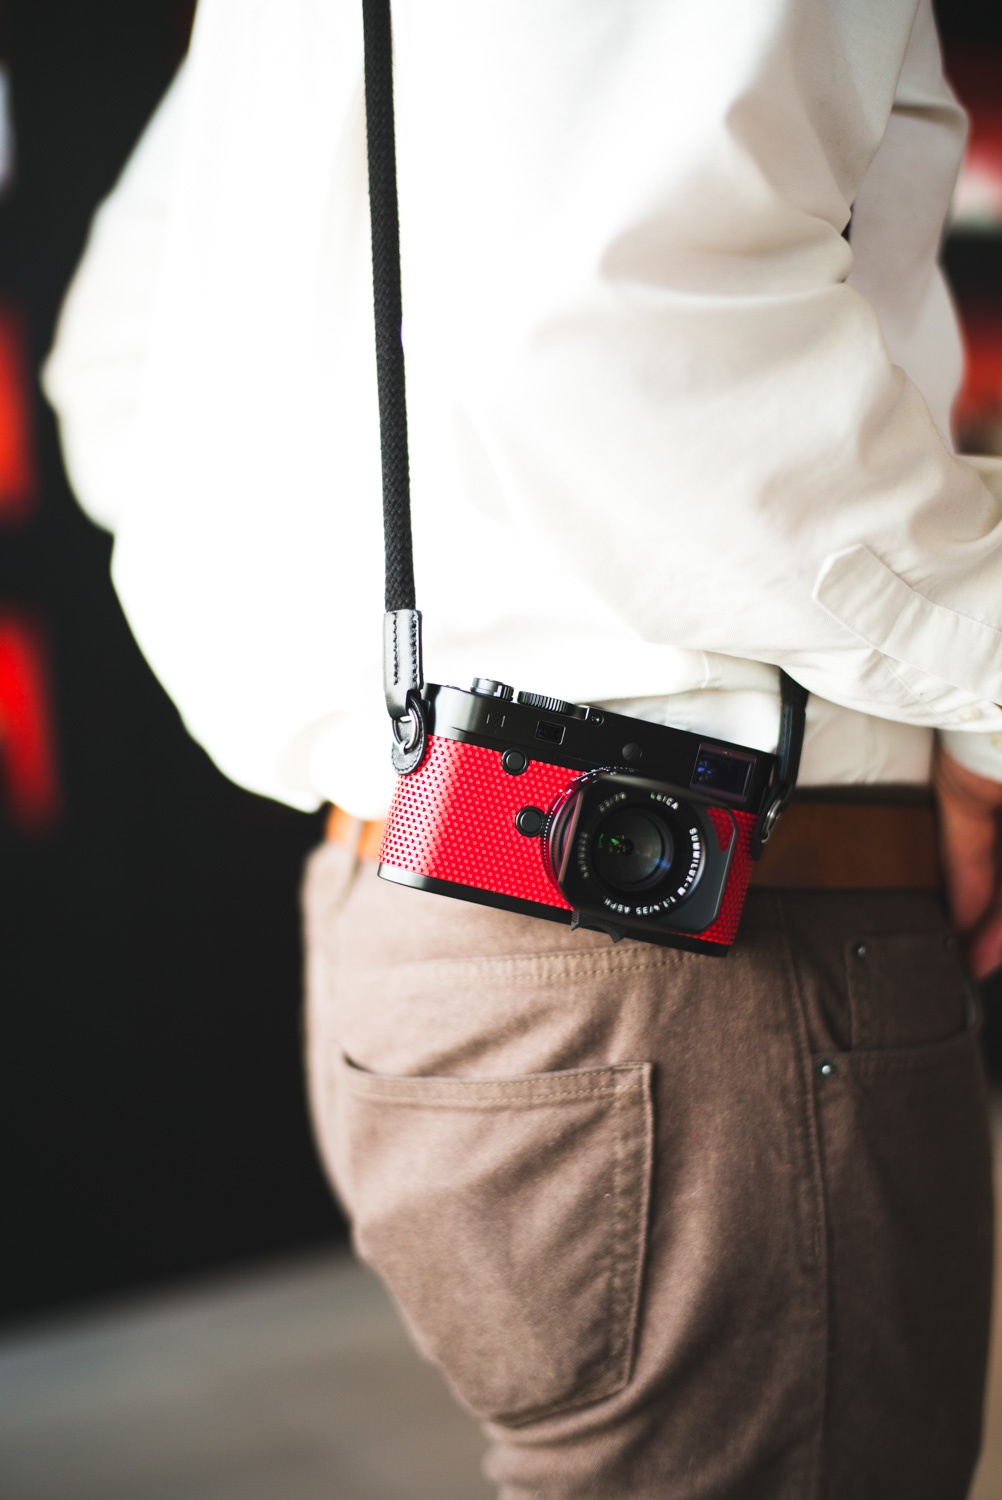 leica-m-p-grip-by-rolf-sachs-limited-edition-camera